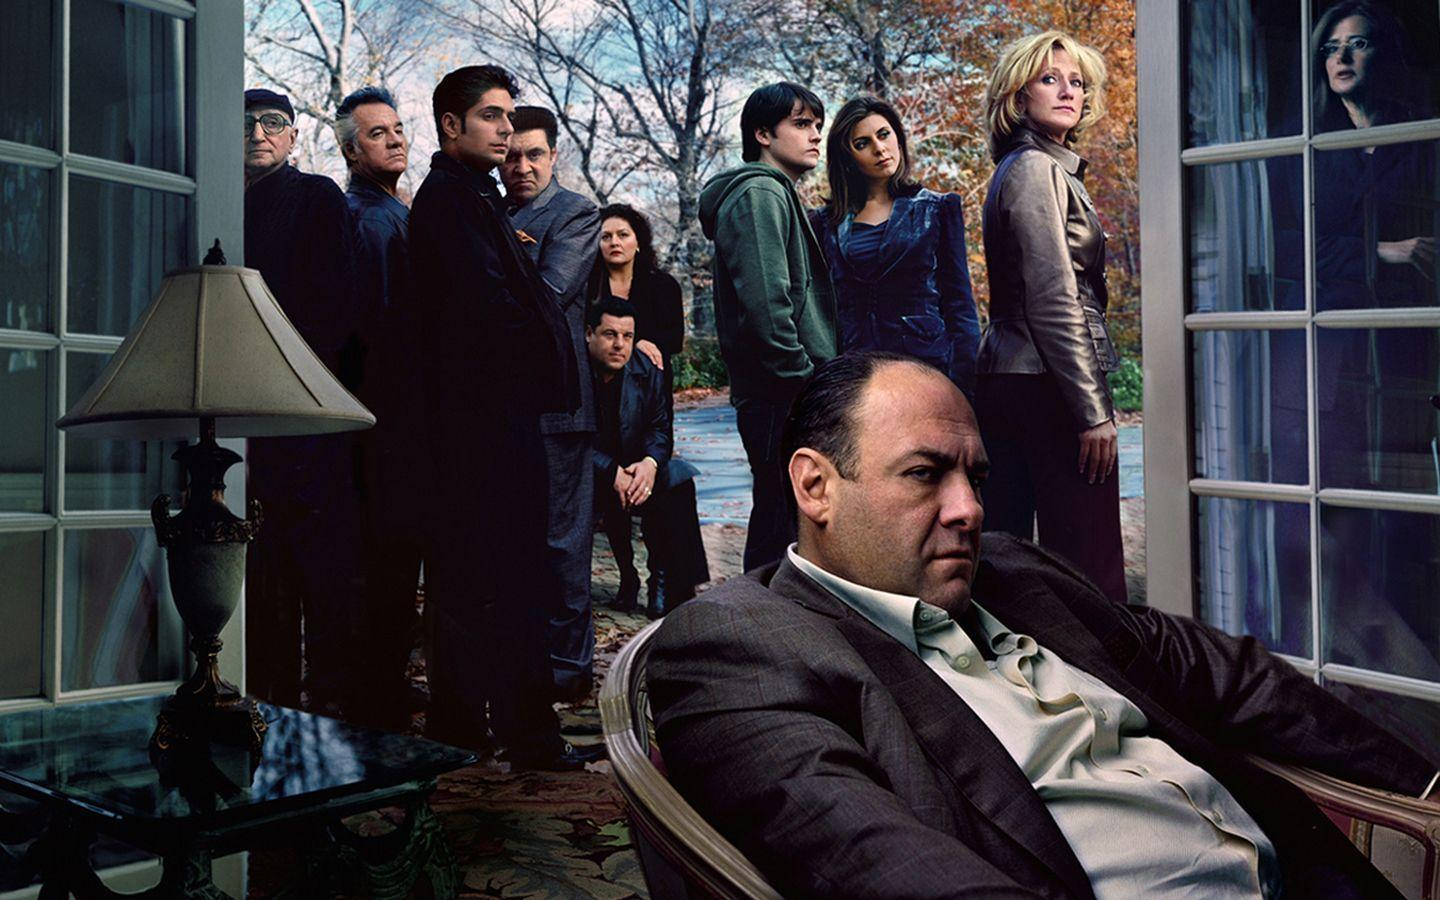 TV Show The Sopranos Wallpapers 1440x900 px Free Download